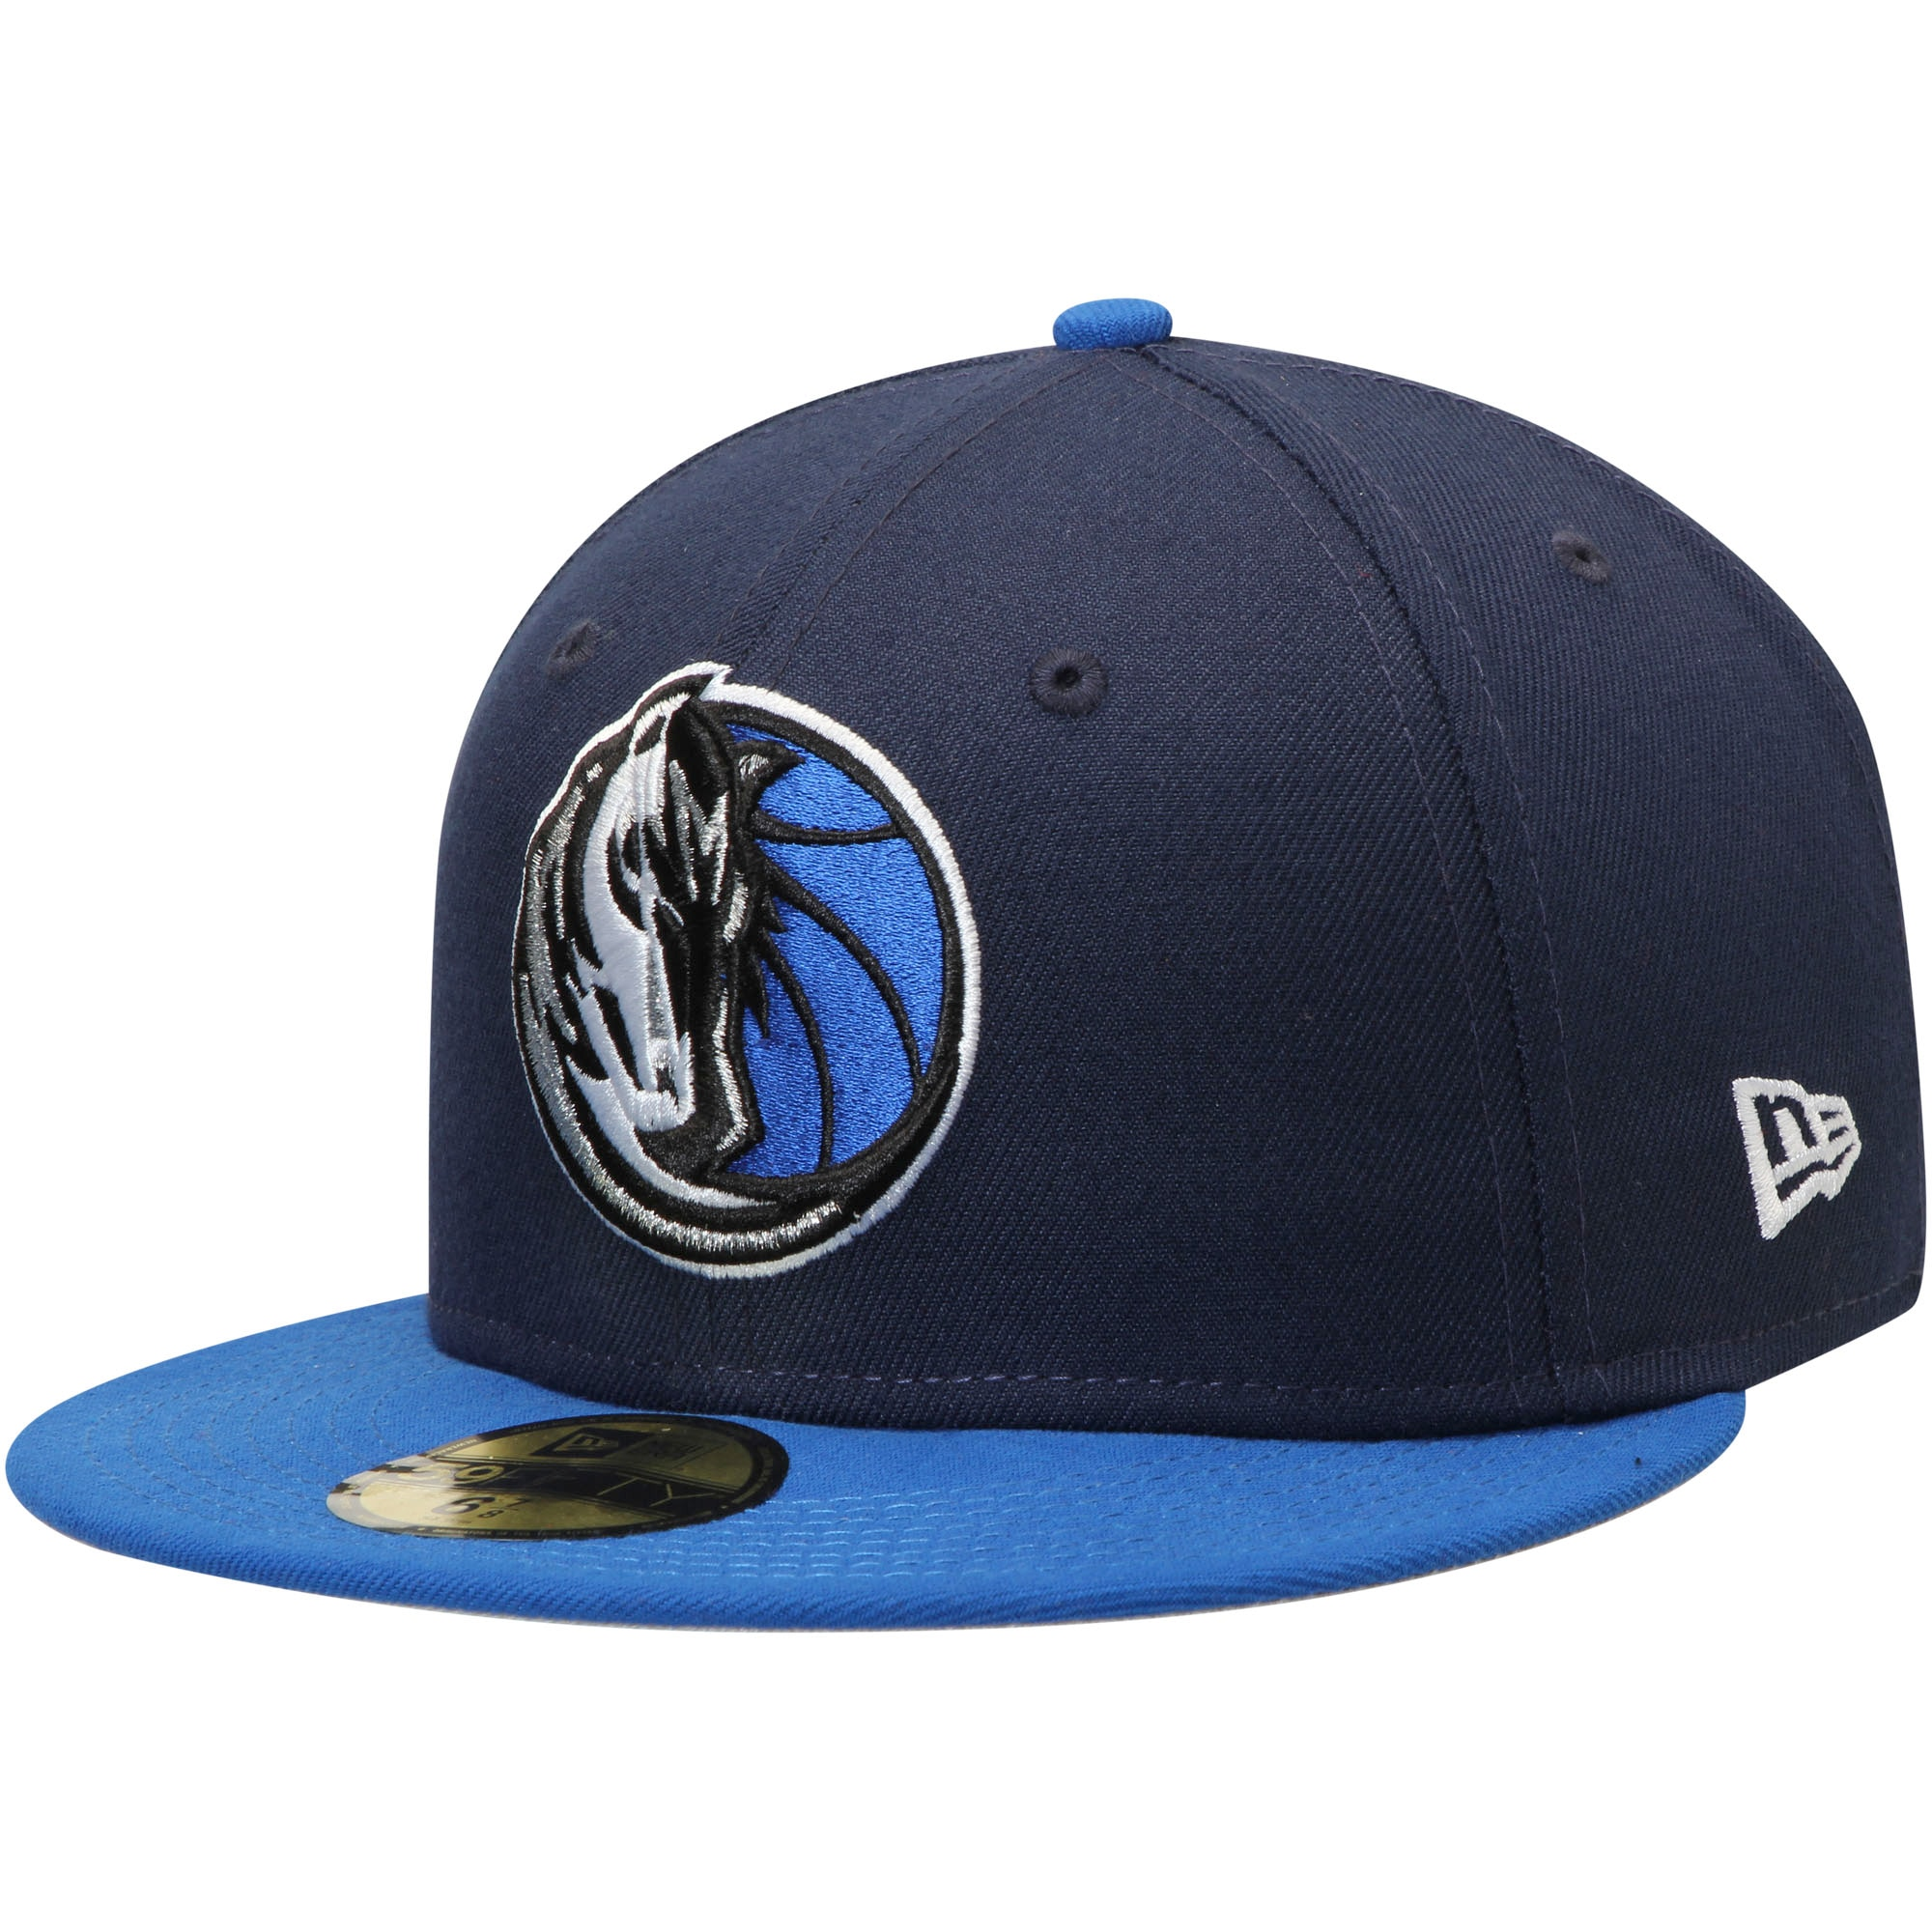 Dallas Mavericks New Era Official Team Color 2Tone 59FIFTY Fitted Hat - Navy/Blue